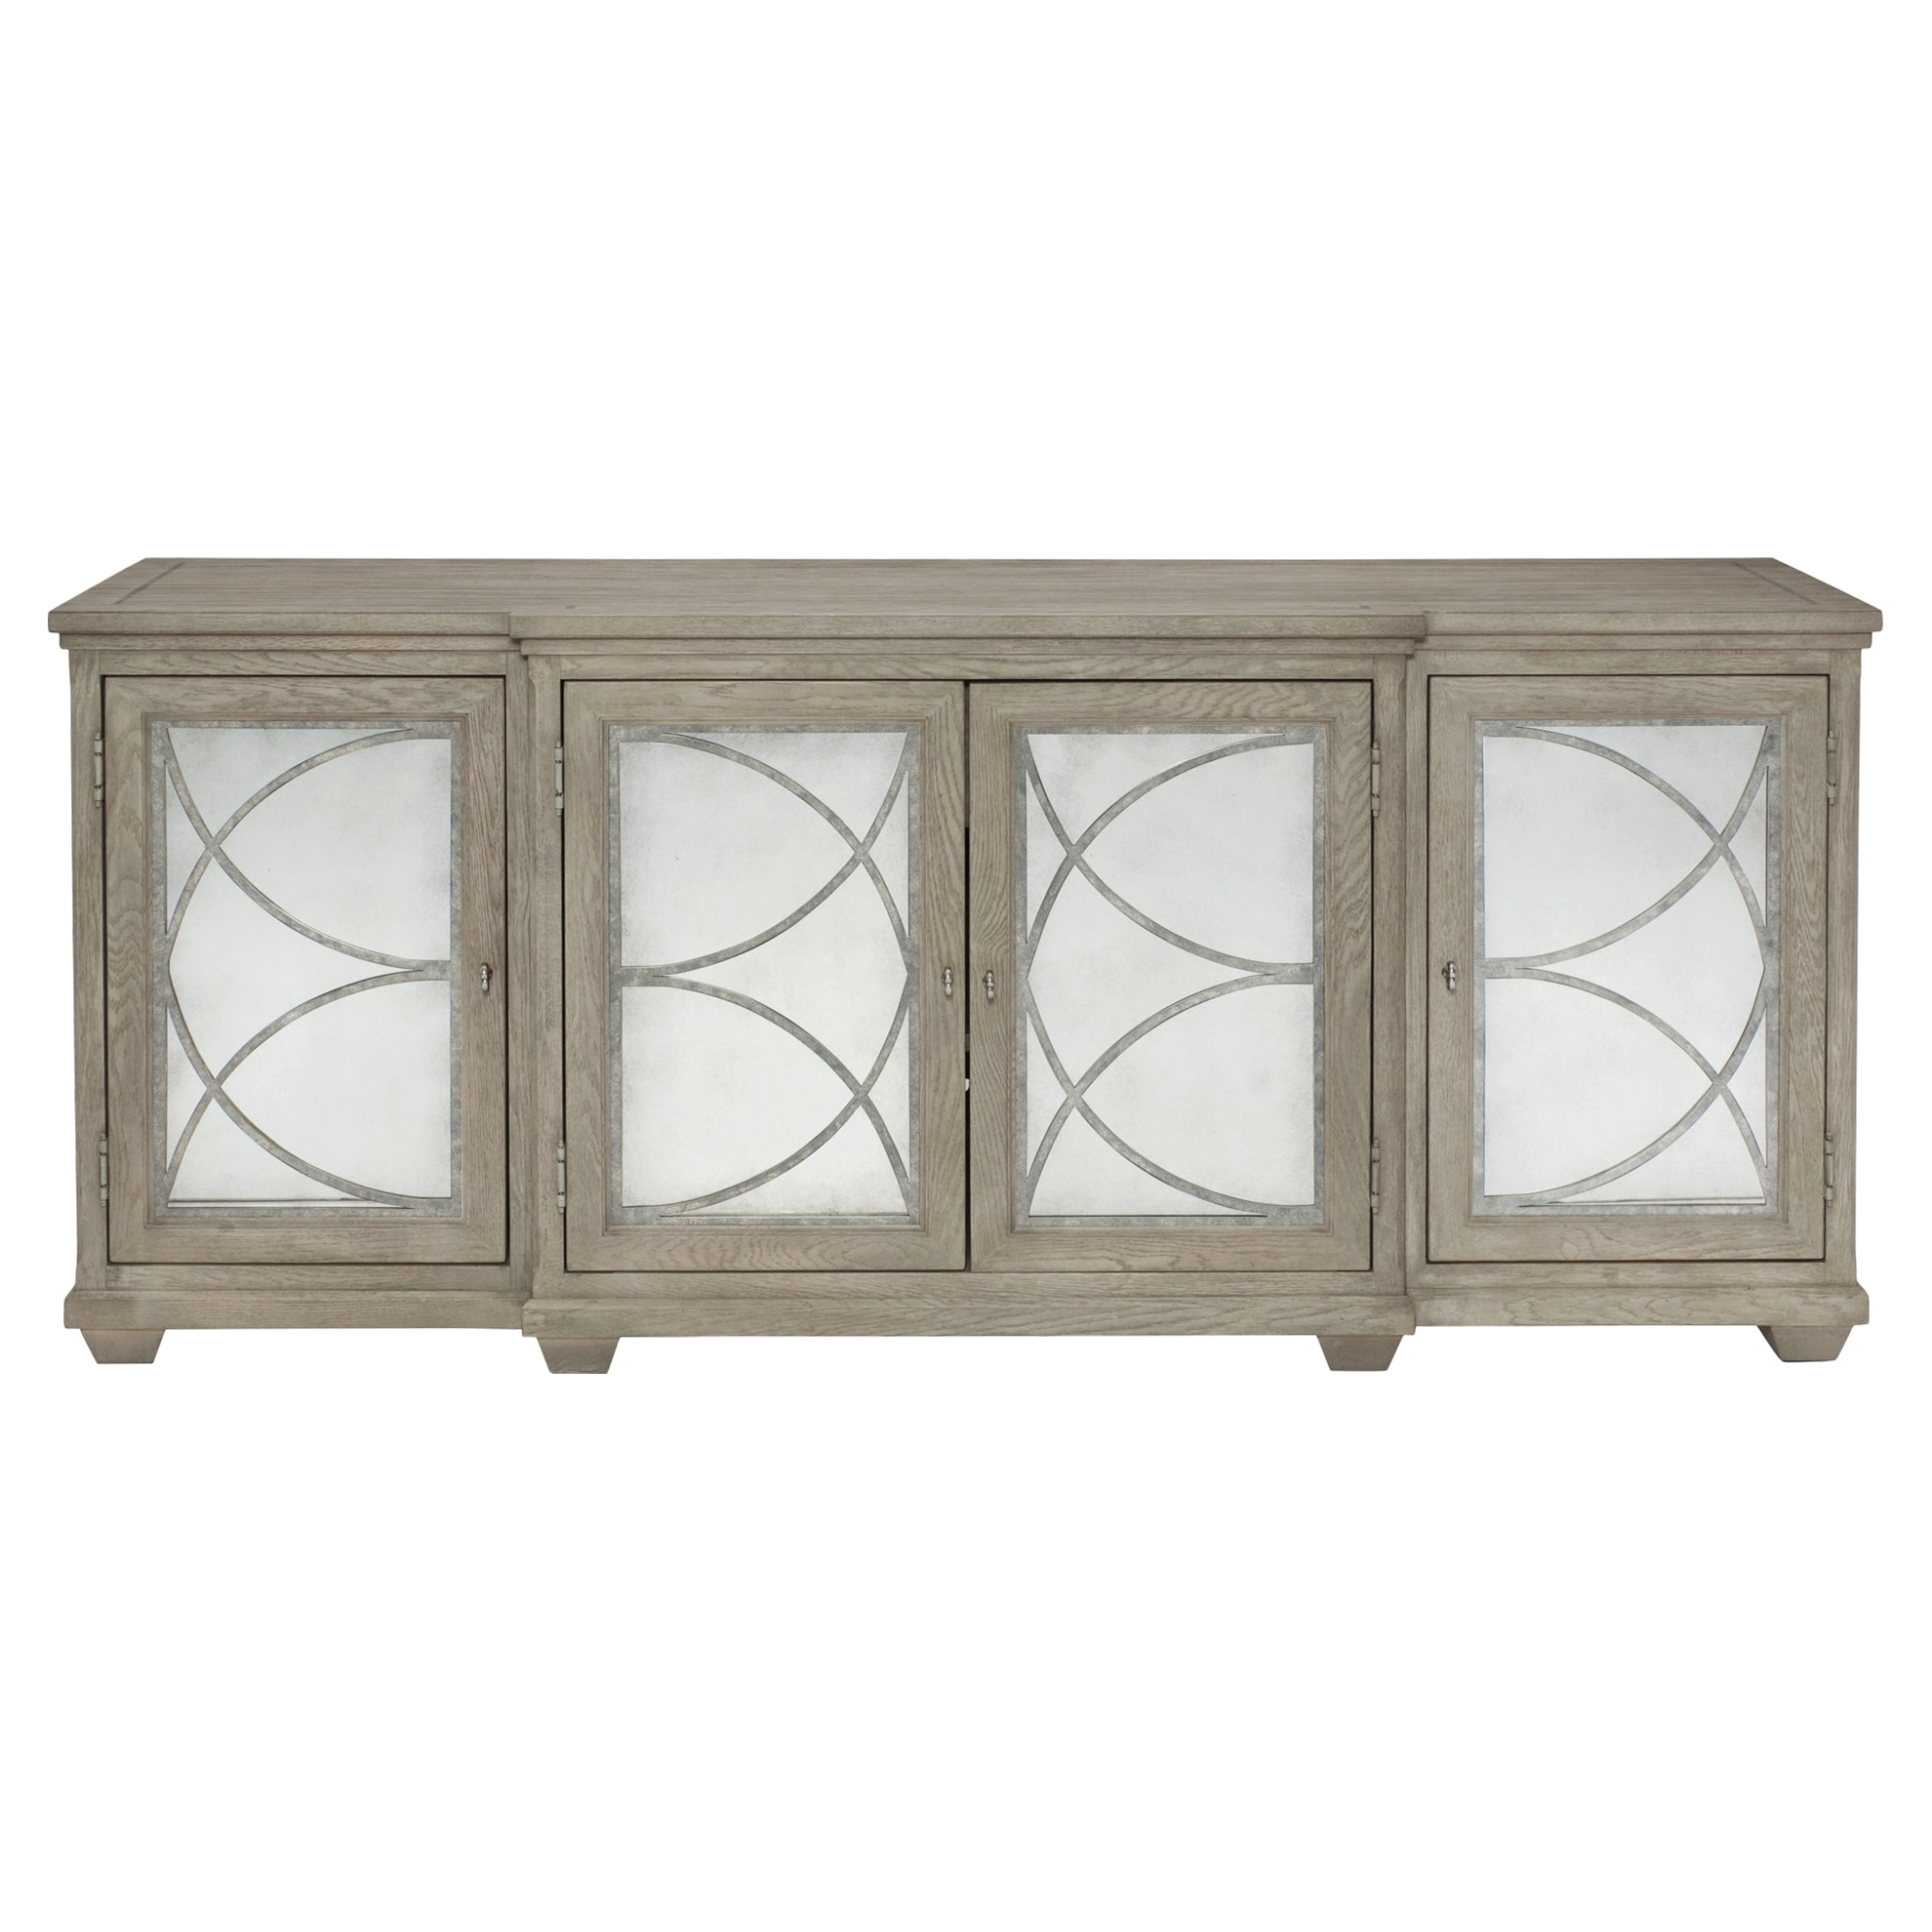 Buffets & Sideboards | Kathy Kuo Home with Square Brass 4 Door Sideboards (Image 7 of 30)